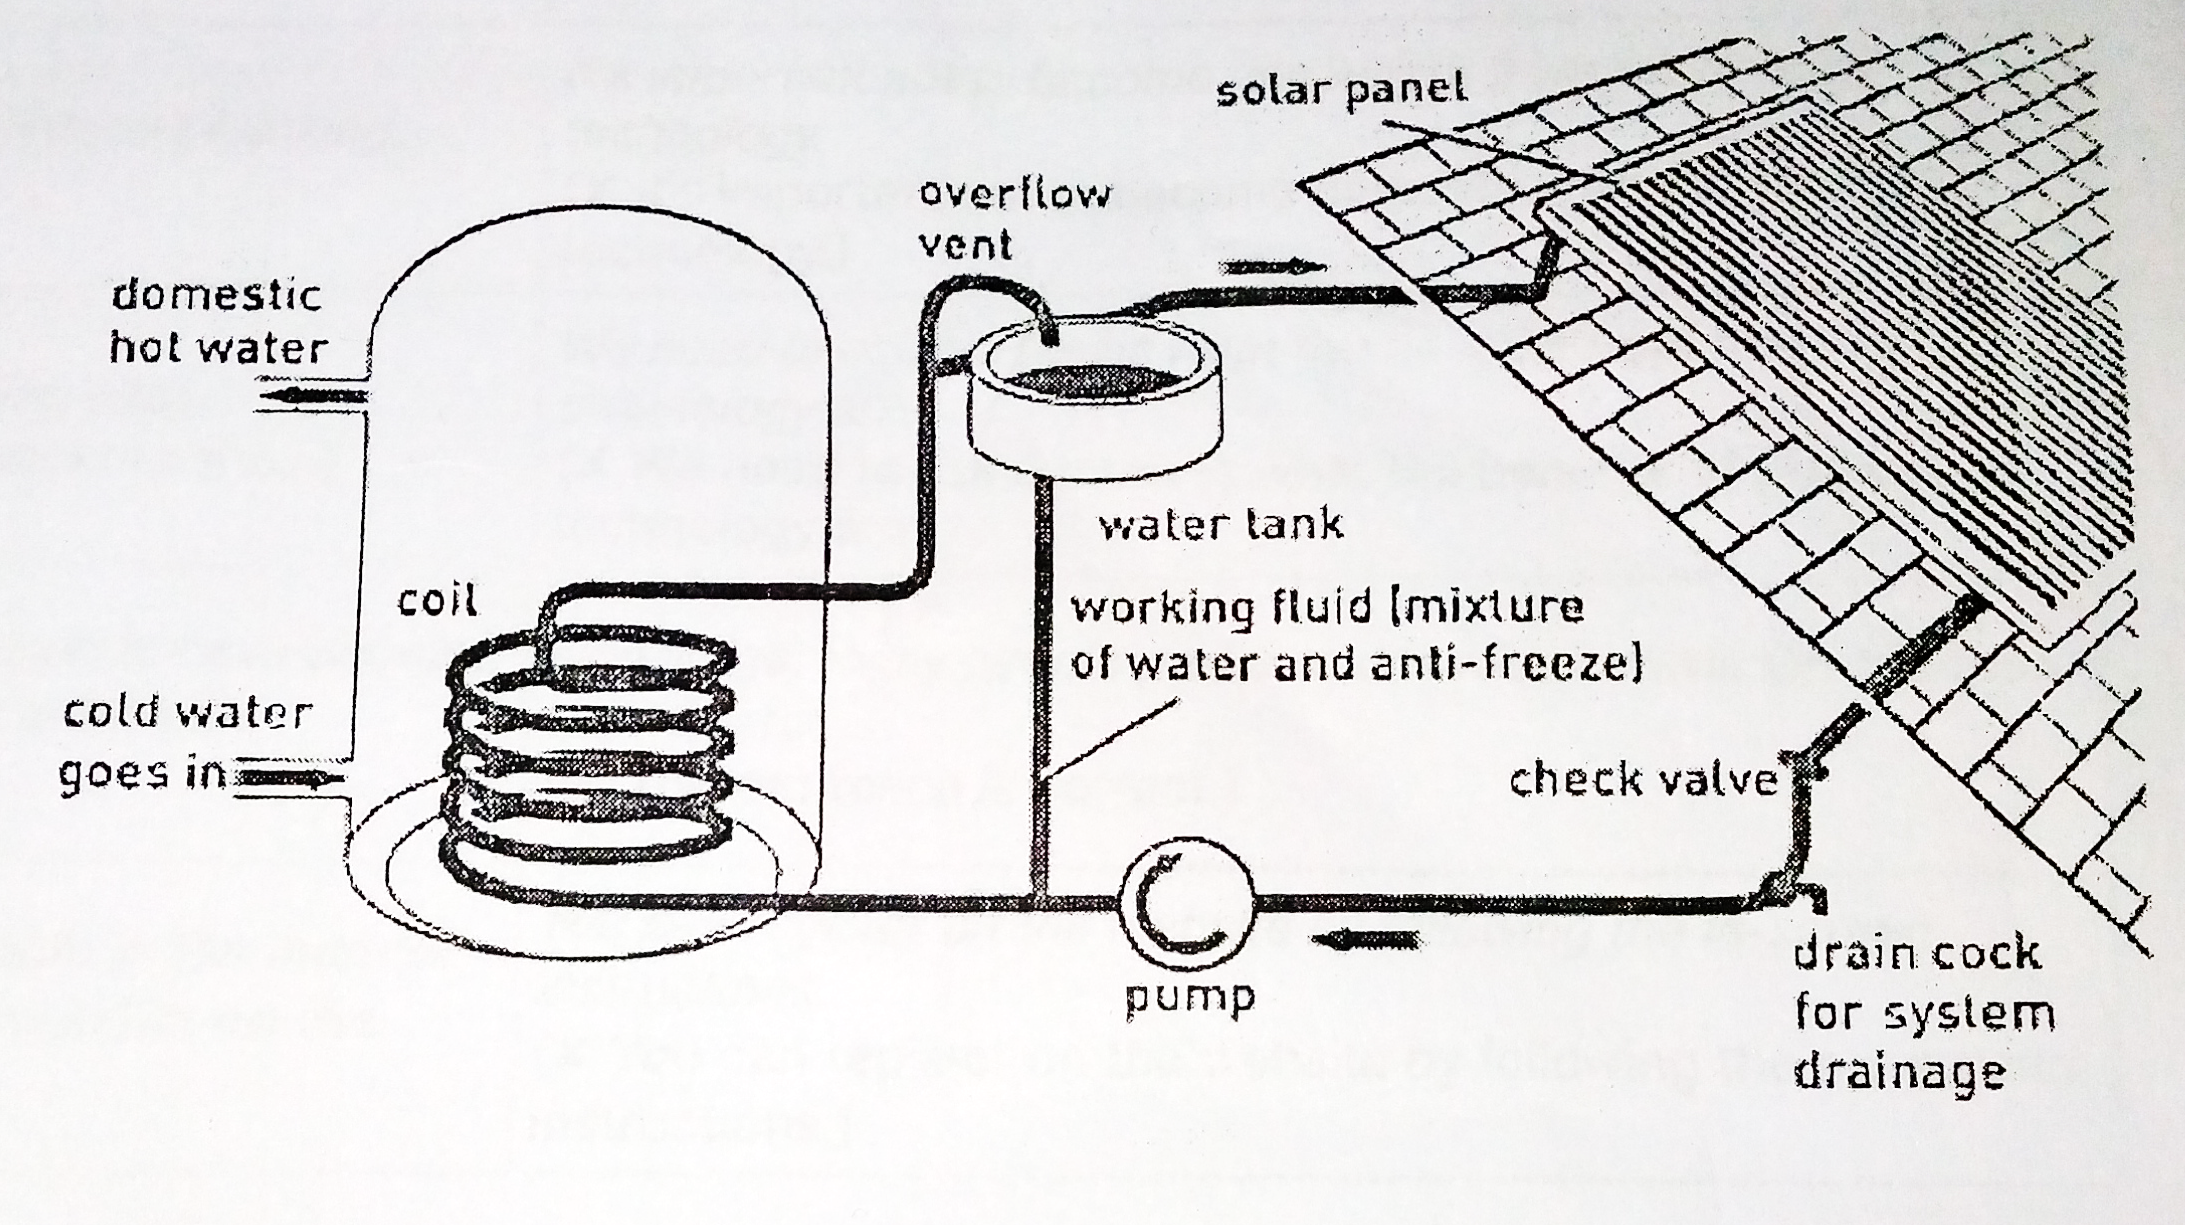 Solar Heating Panel Diagram Manual Guide Wiring Vacuumevacuatedtubediagram The Shows A Water System From Contemporary Home Summarise Building Of